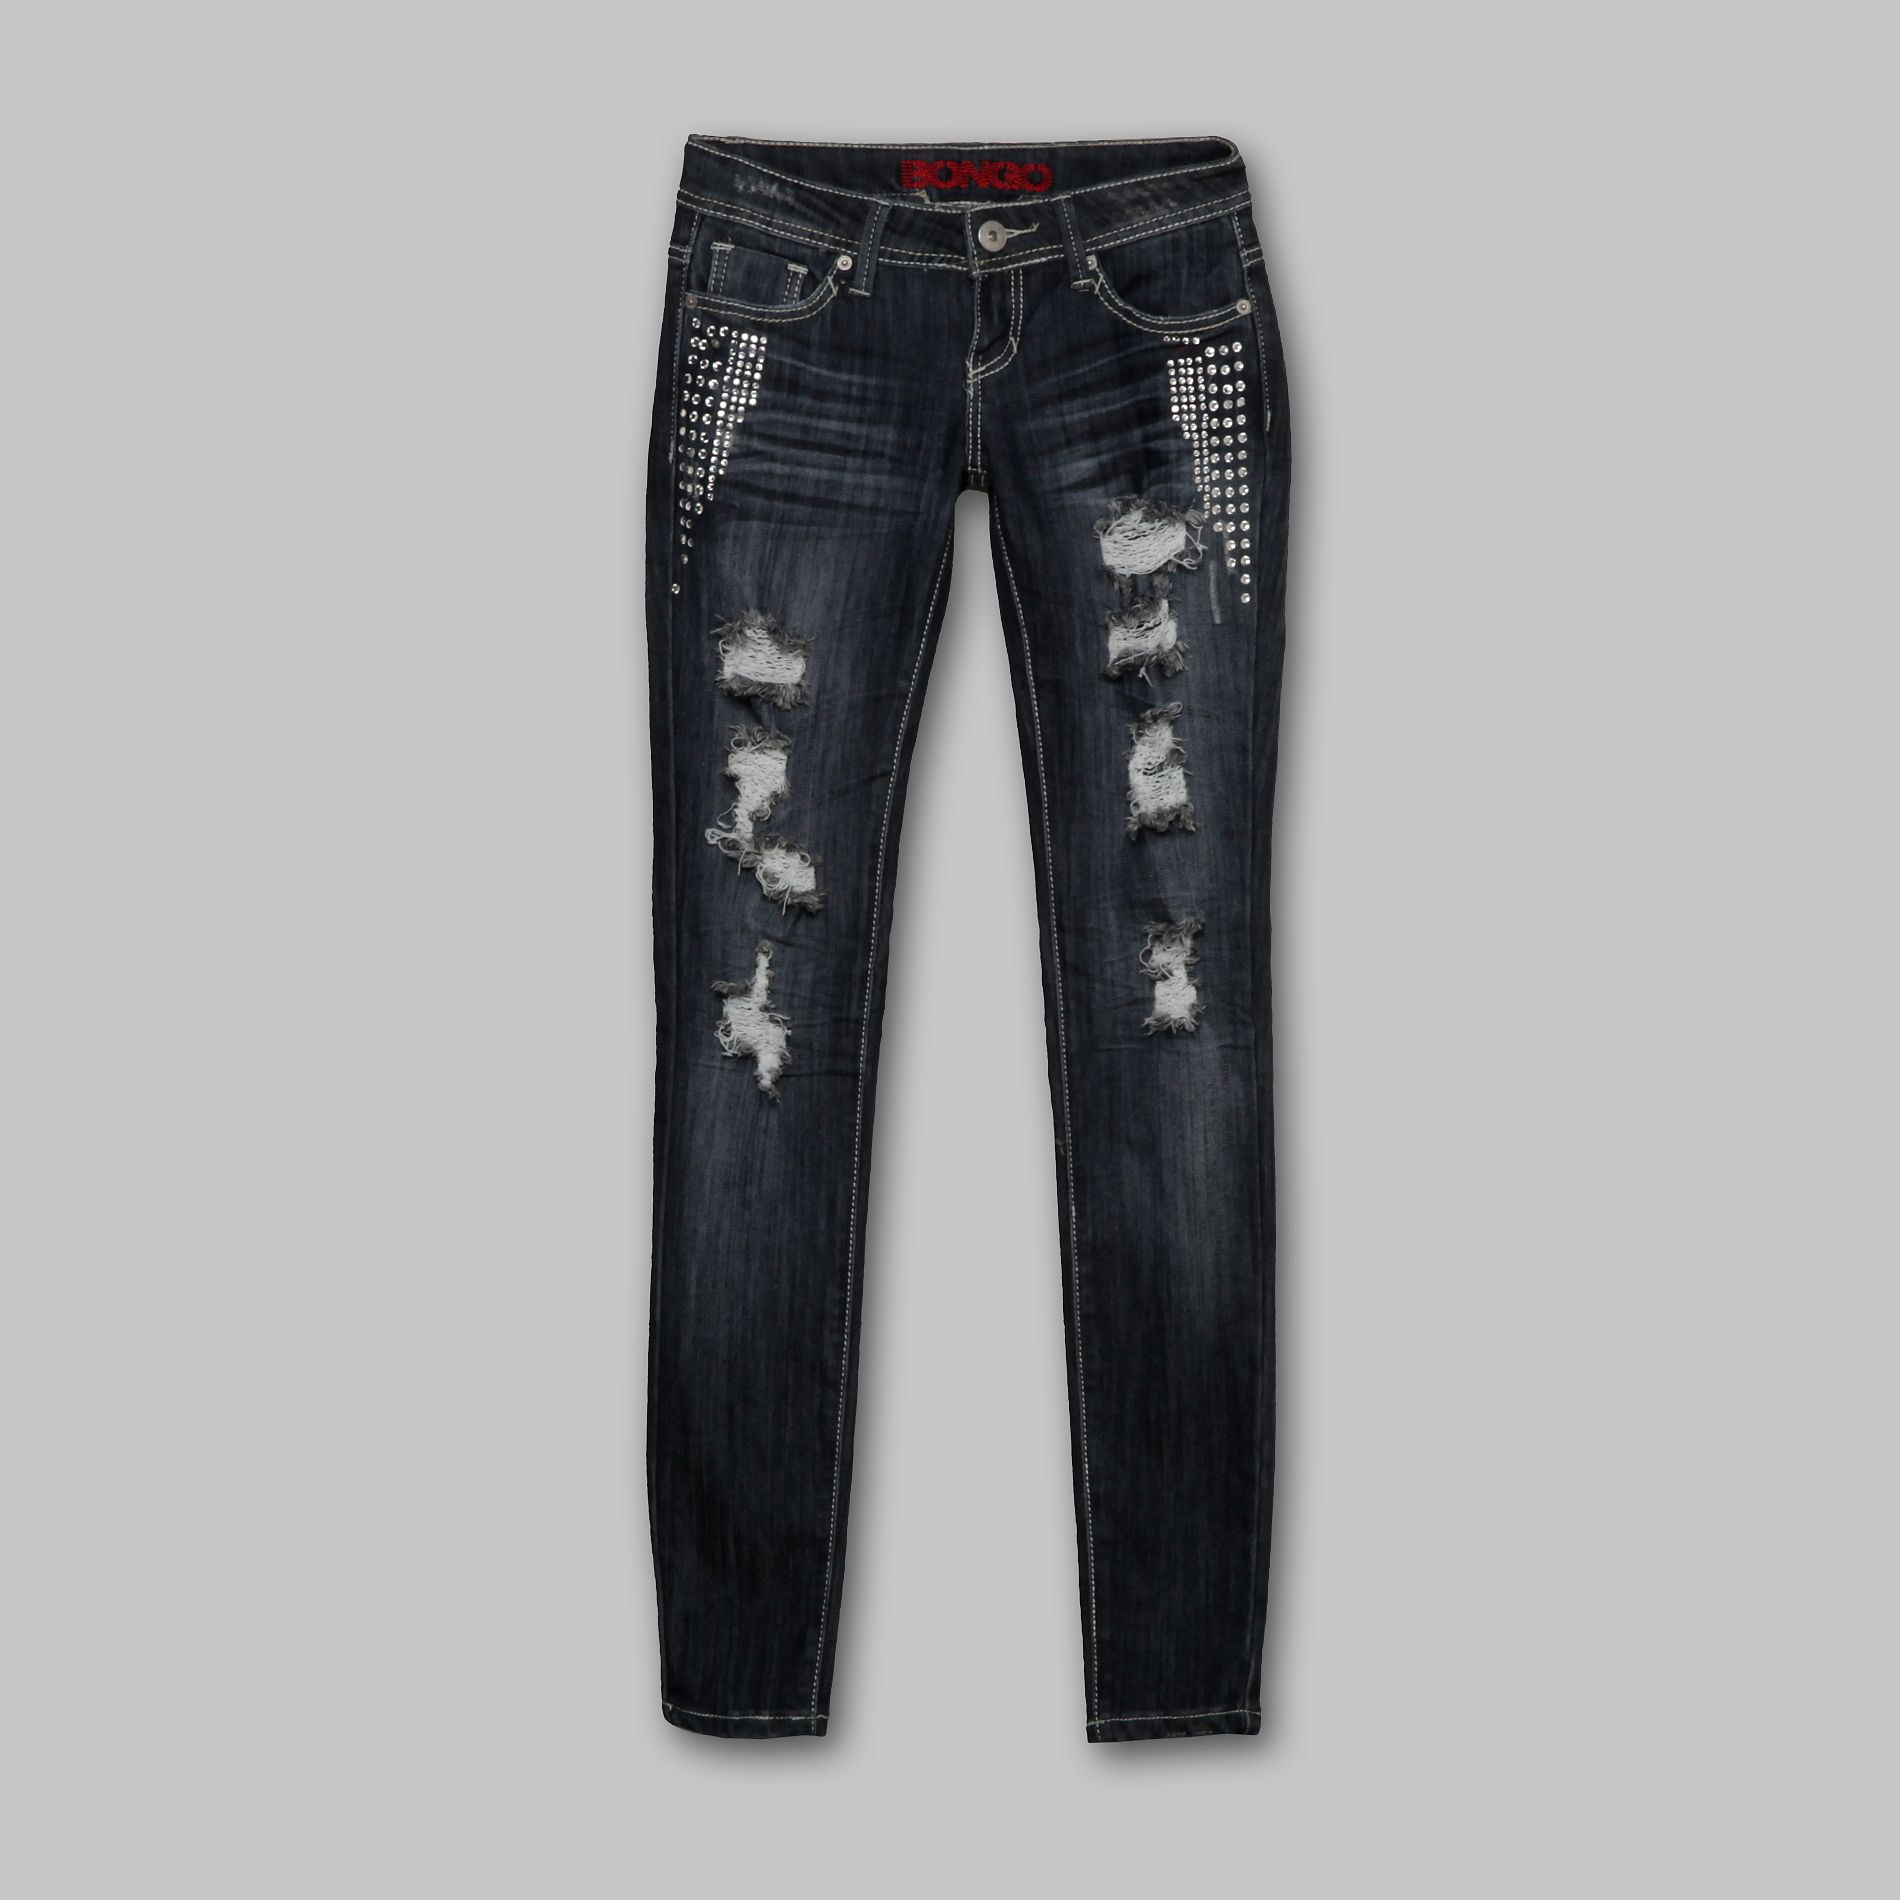 Bongo Junior's Jeans Skinny Bling Back Pocket Destruction at Sears.com